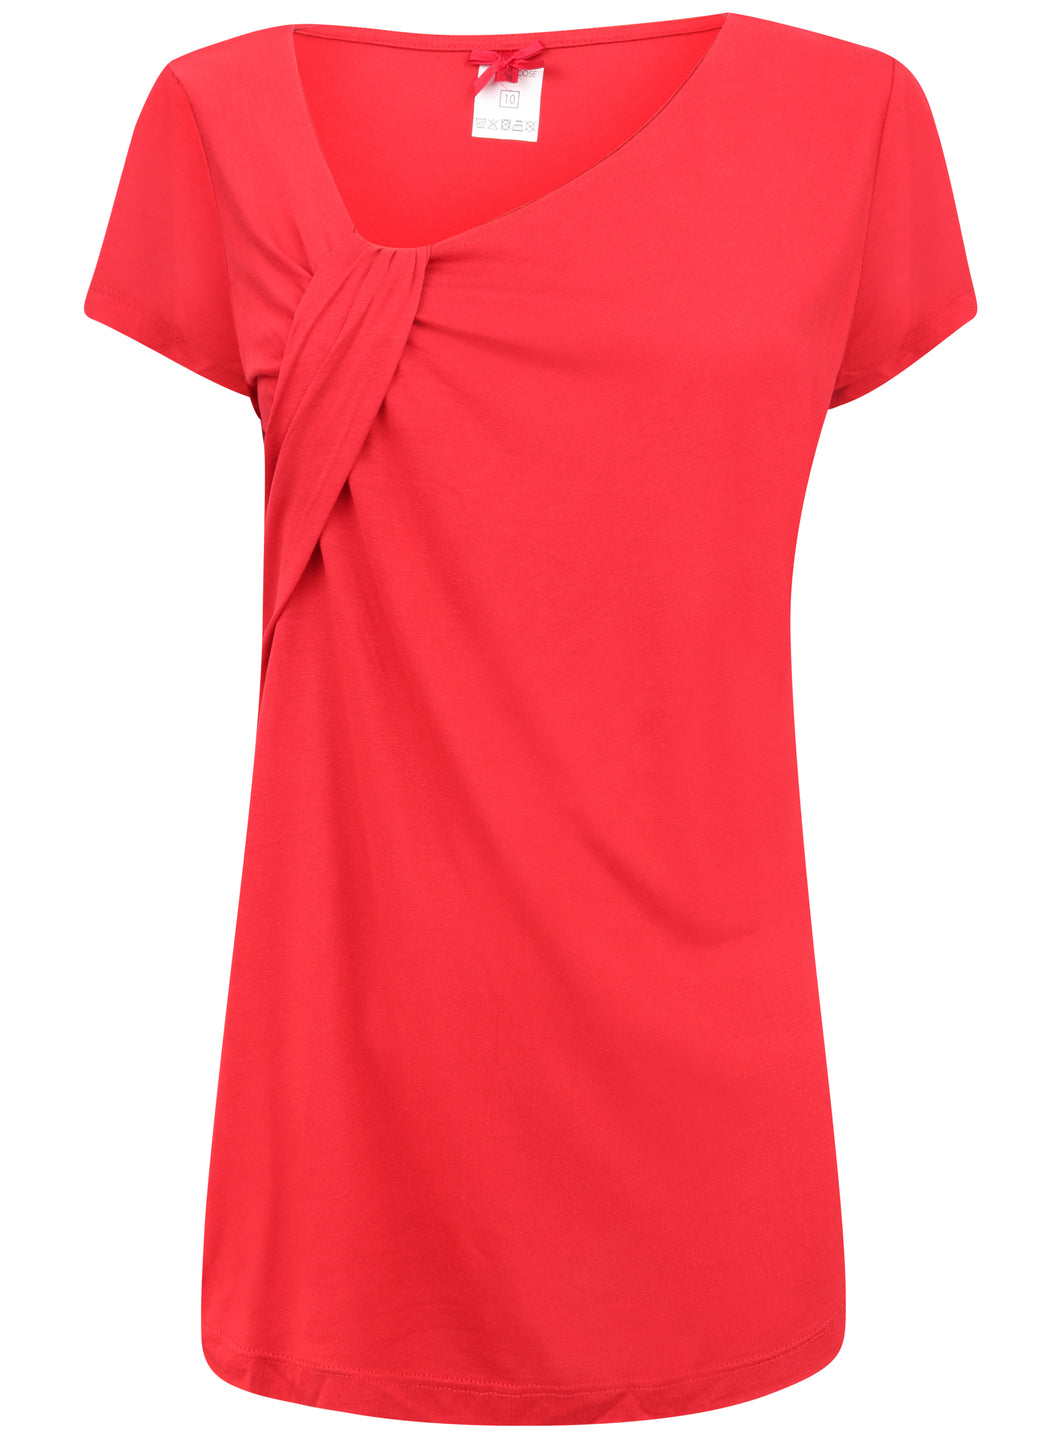 Red Short Sleeve Blouse Top